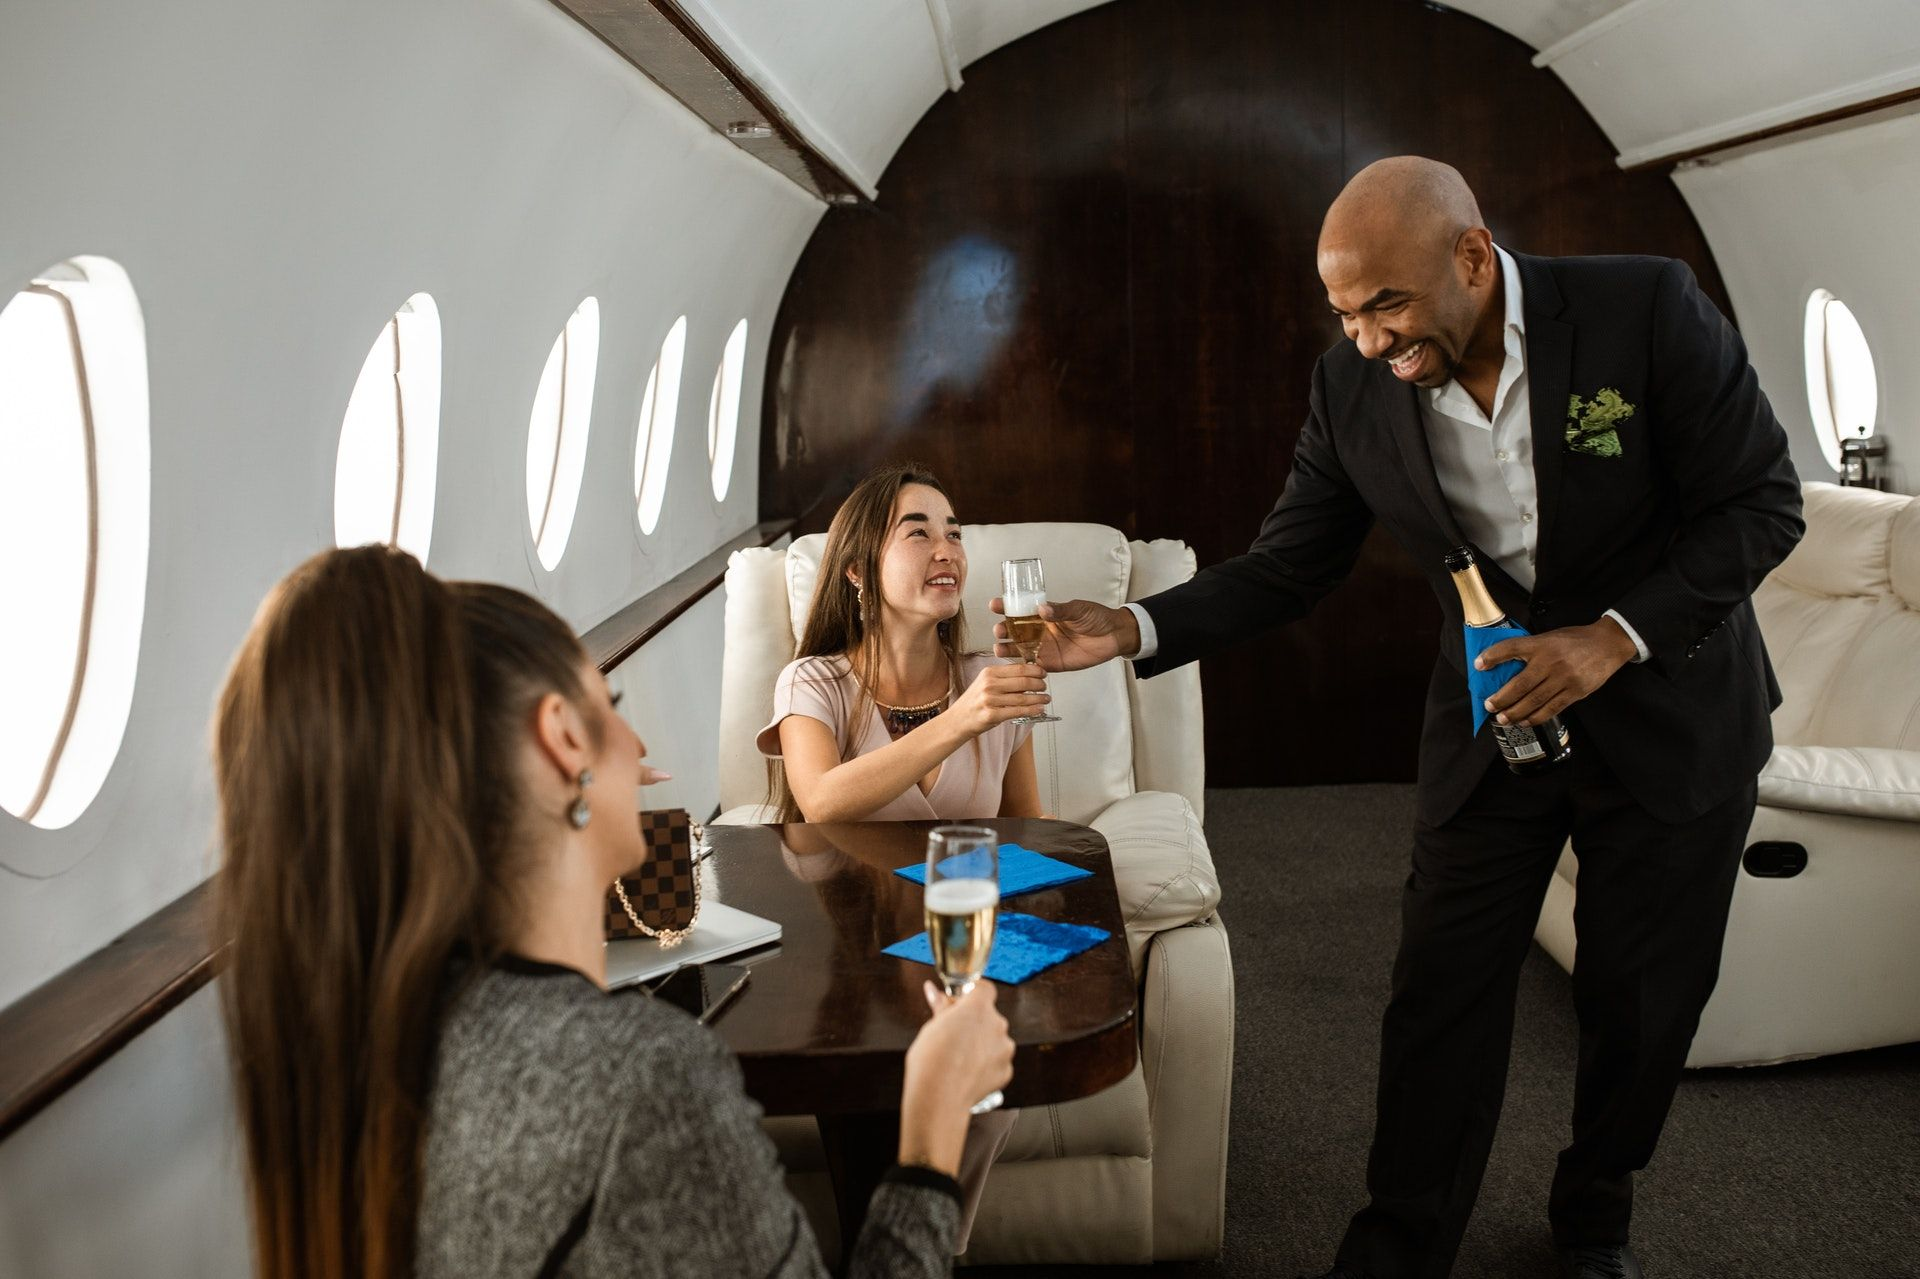 Women getting served wine in a plane; WSET Level 1 exam